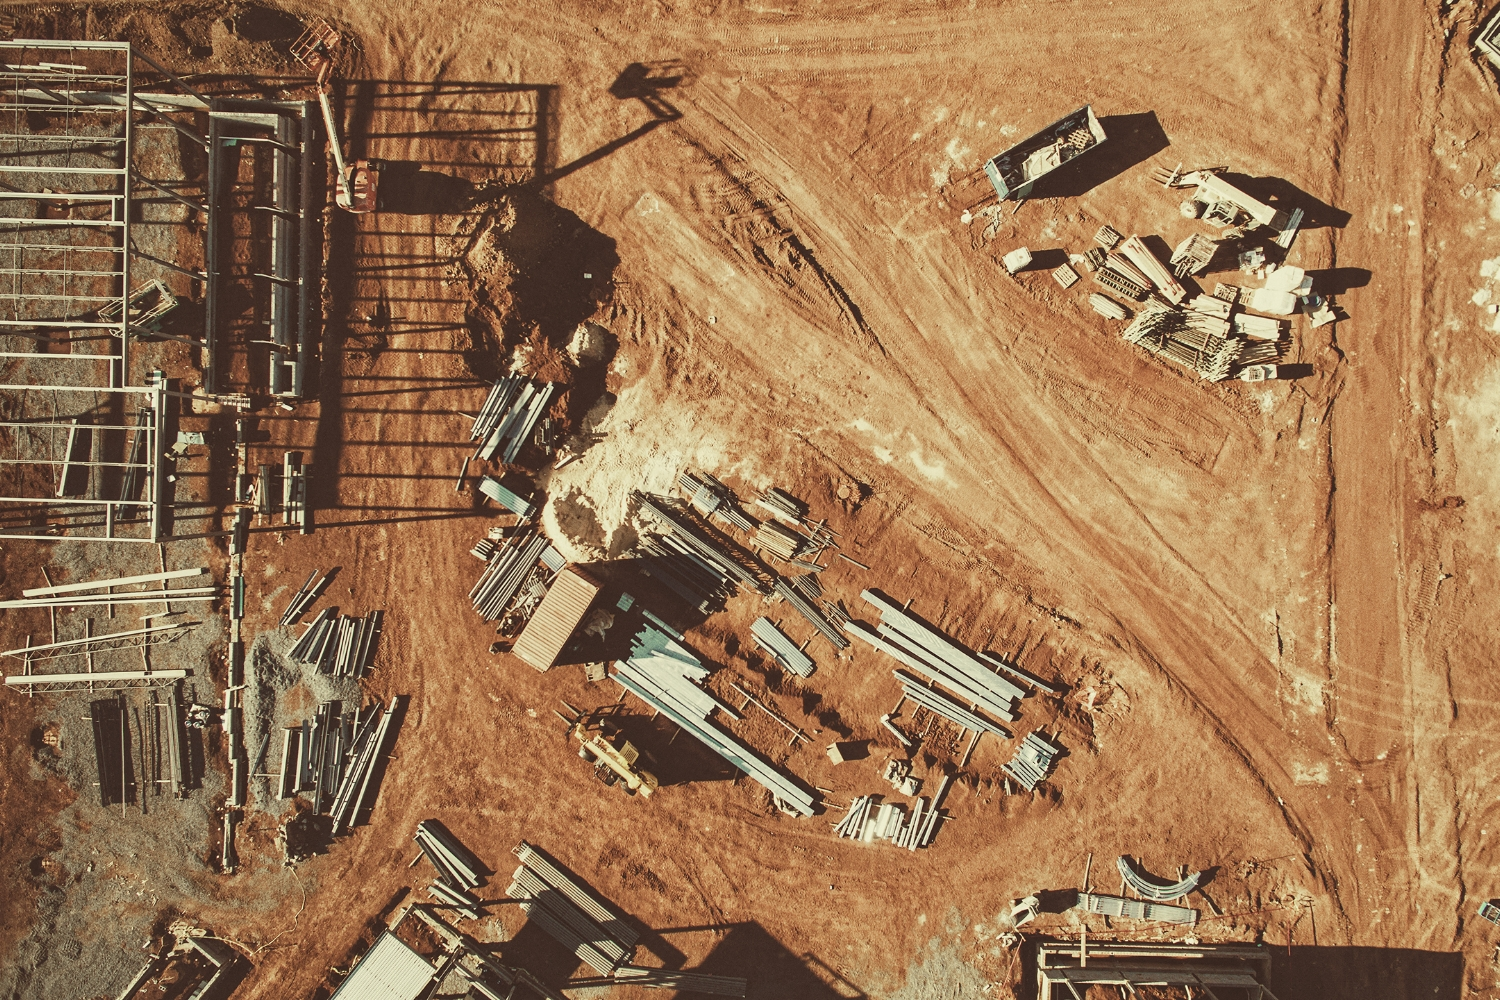 graycor-waverly-site-stockpile.jpg